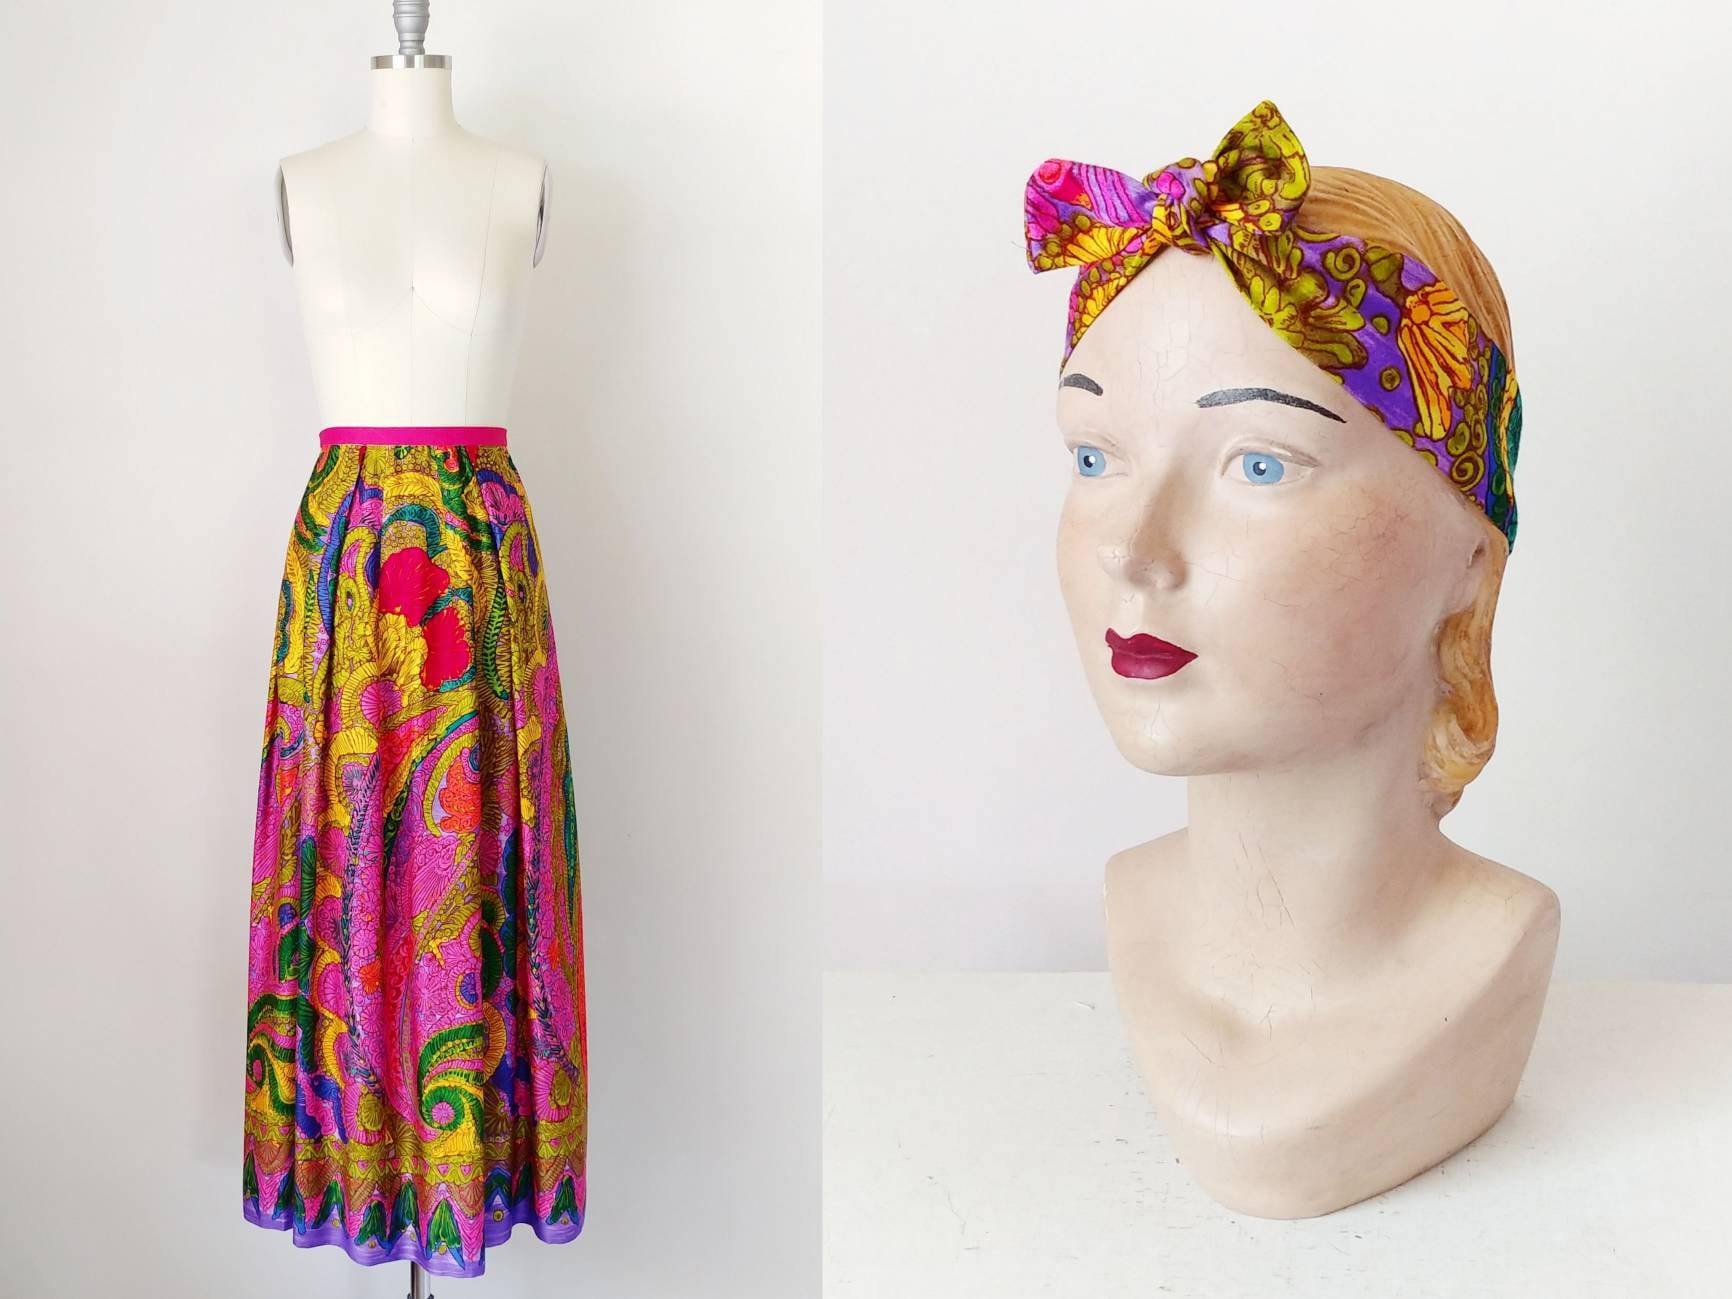 Vintage Scarf Styles -1920s to 1960s 1960S Psychedelic Floral Maxi Skirt  Scarf Set  Vintage 60S Hot Pink Purple Gold Green Womens Clothing Small Medium $66.60 AT vintagedancer.com